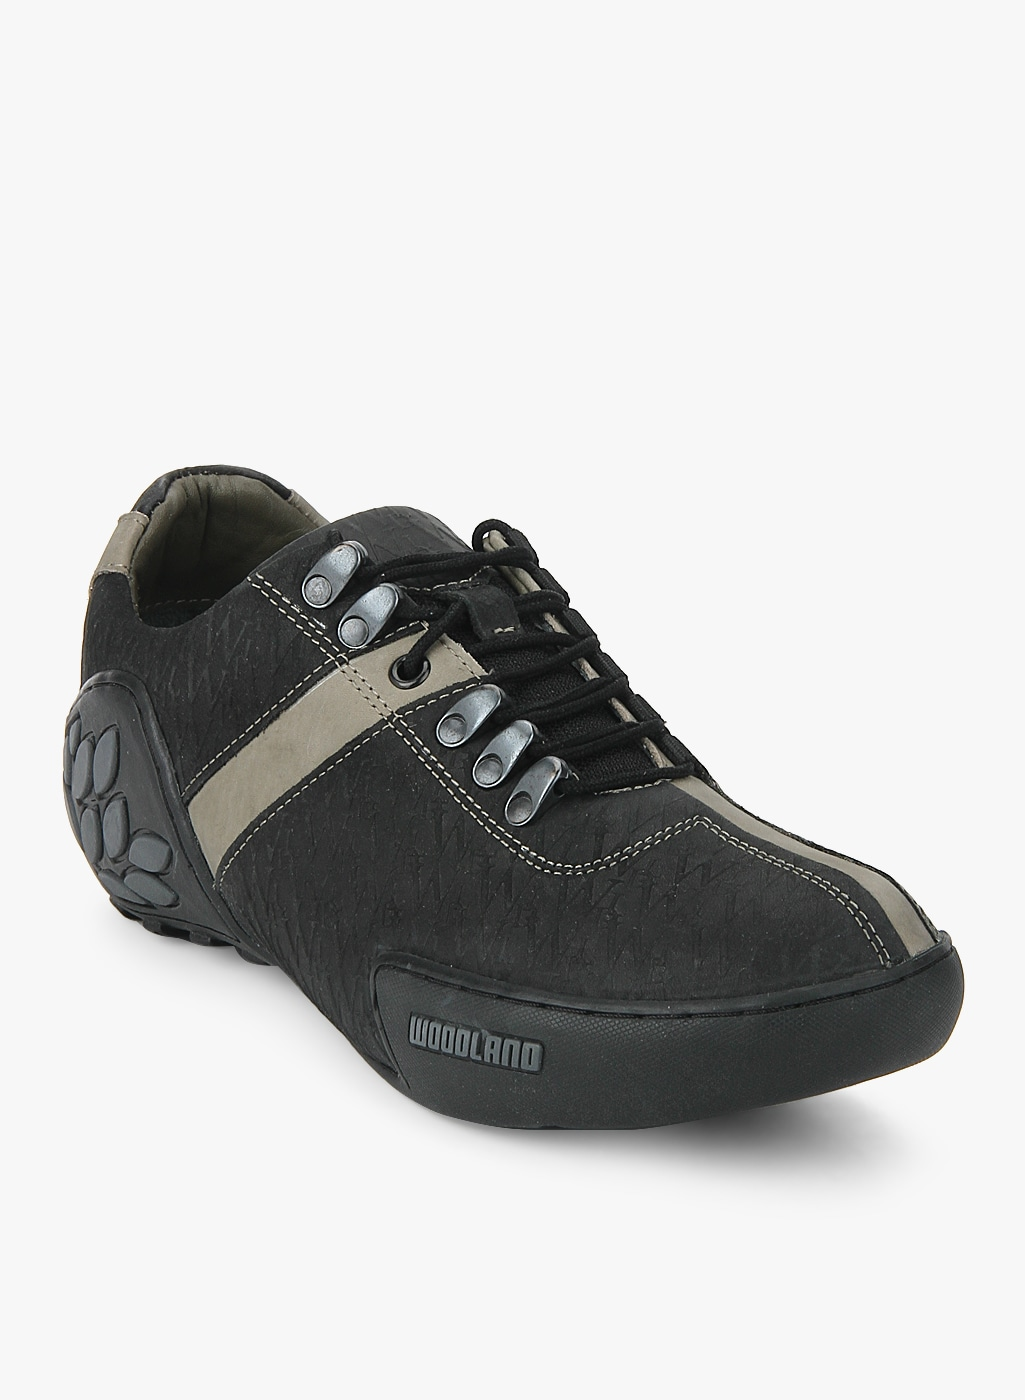 682139a75b4 Woodland Shoes - Buy Genuine Woodland Shoes Online At Best Price - Myntra